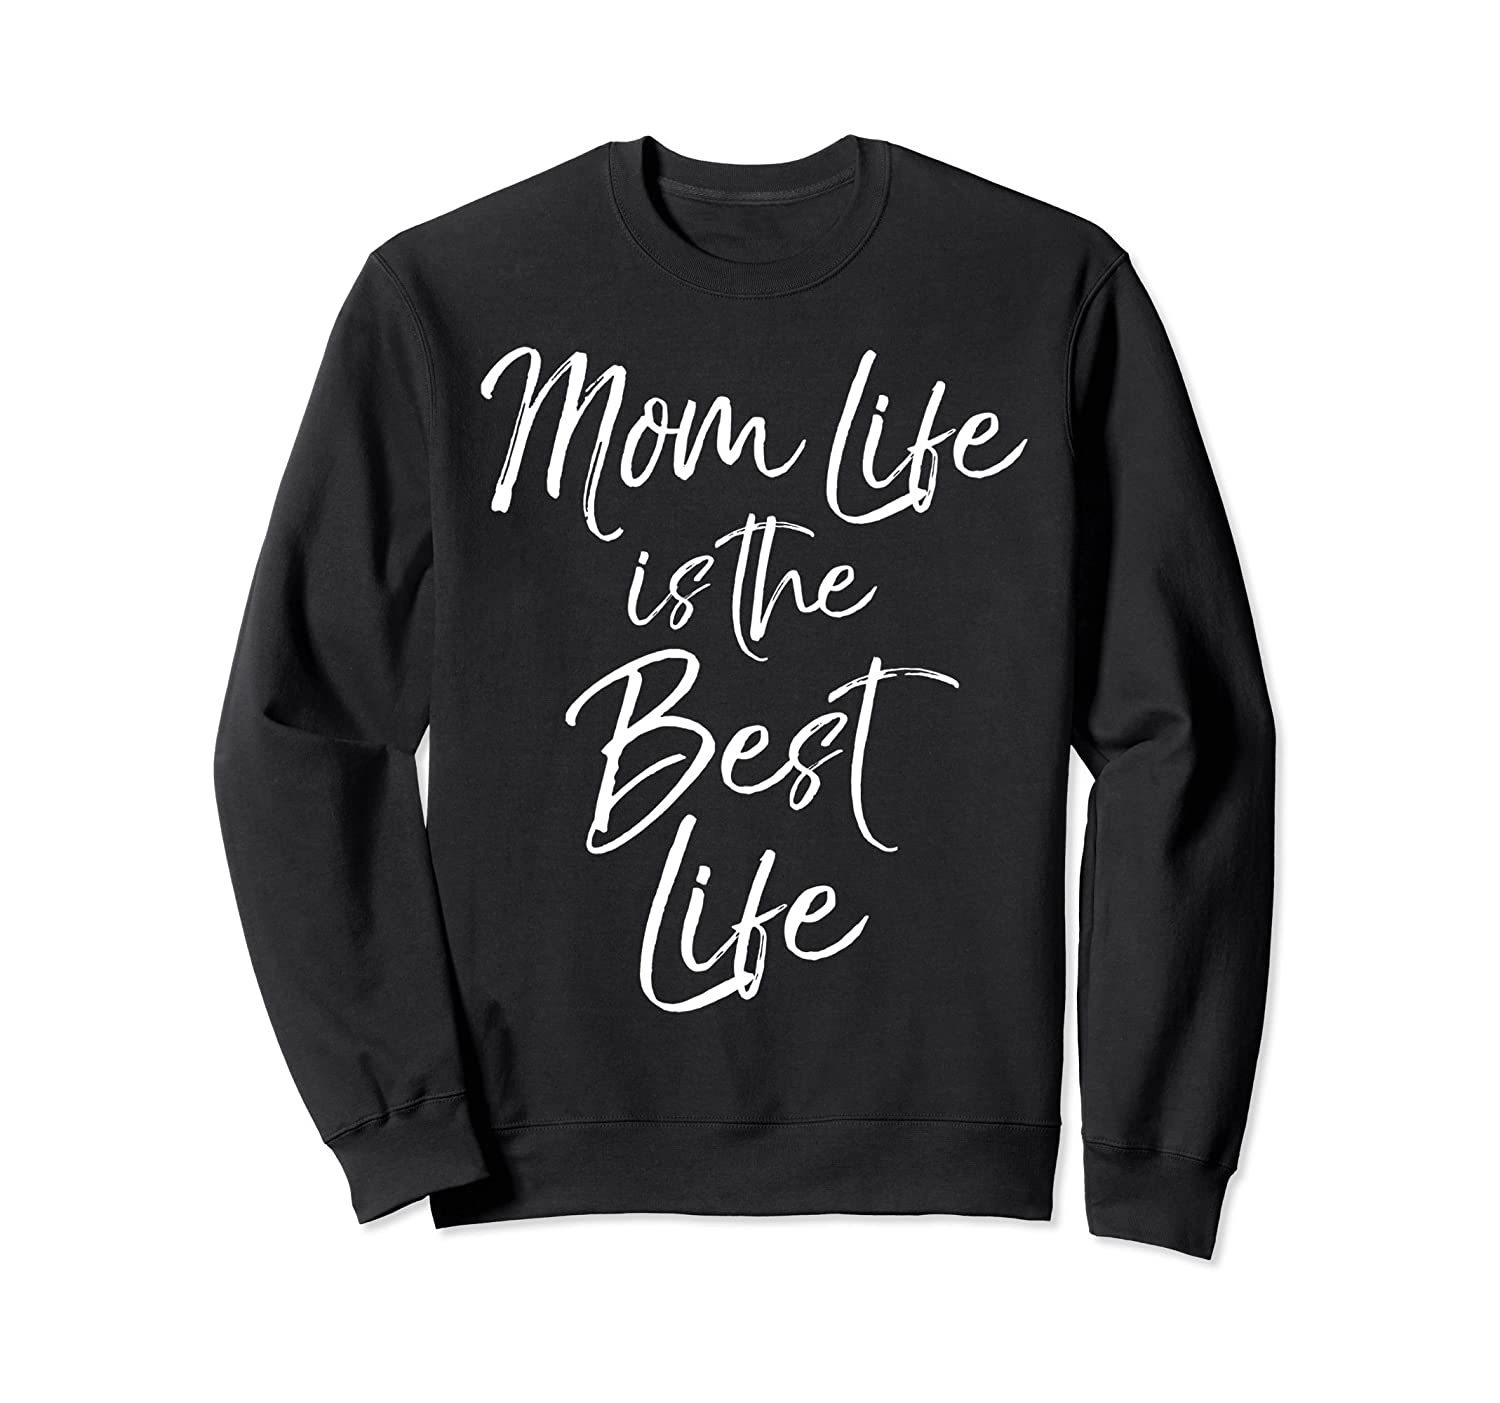 Mom Life is the Best Life Sweatshirt Cute Mother Sweats-ah my shirt one gift